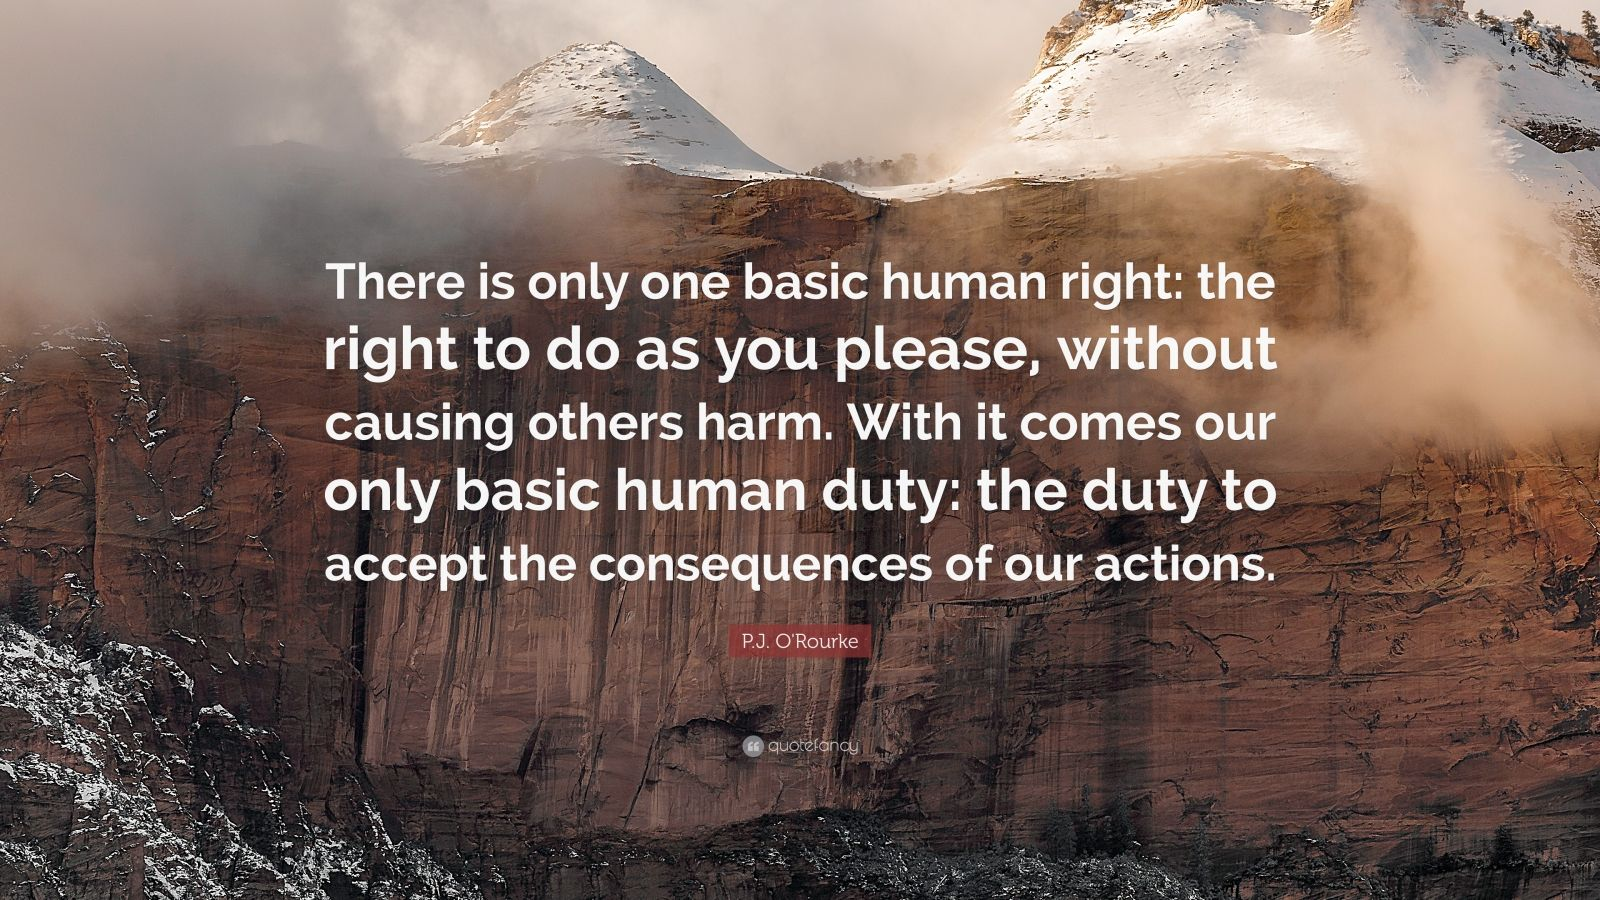 "P.J. O'Rourke Quote: ""There is only one basic human right: the right to do as you please, without causing others harm. With it comes our only basic human duty: the duty to accept the consequences of our actions."""